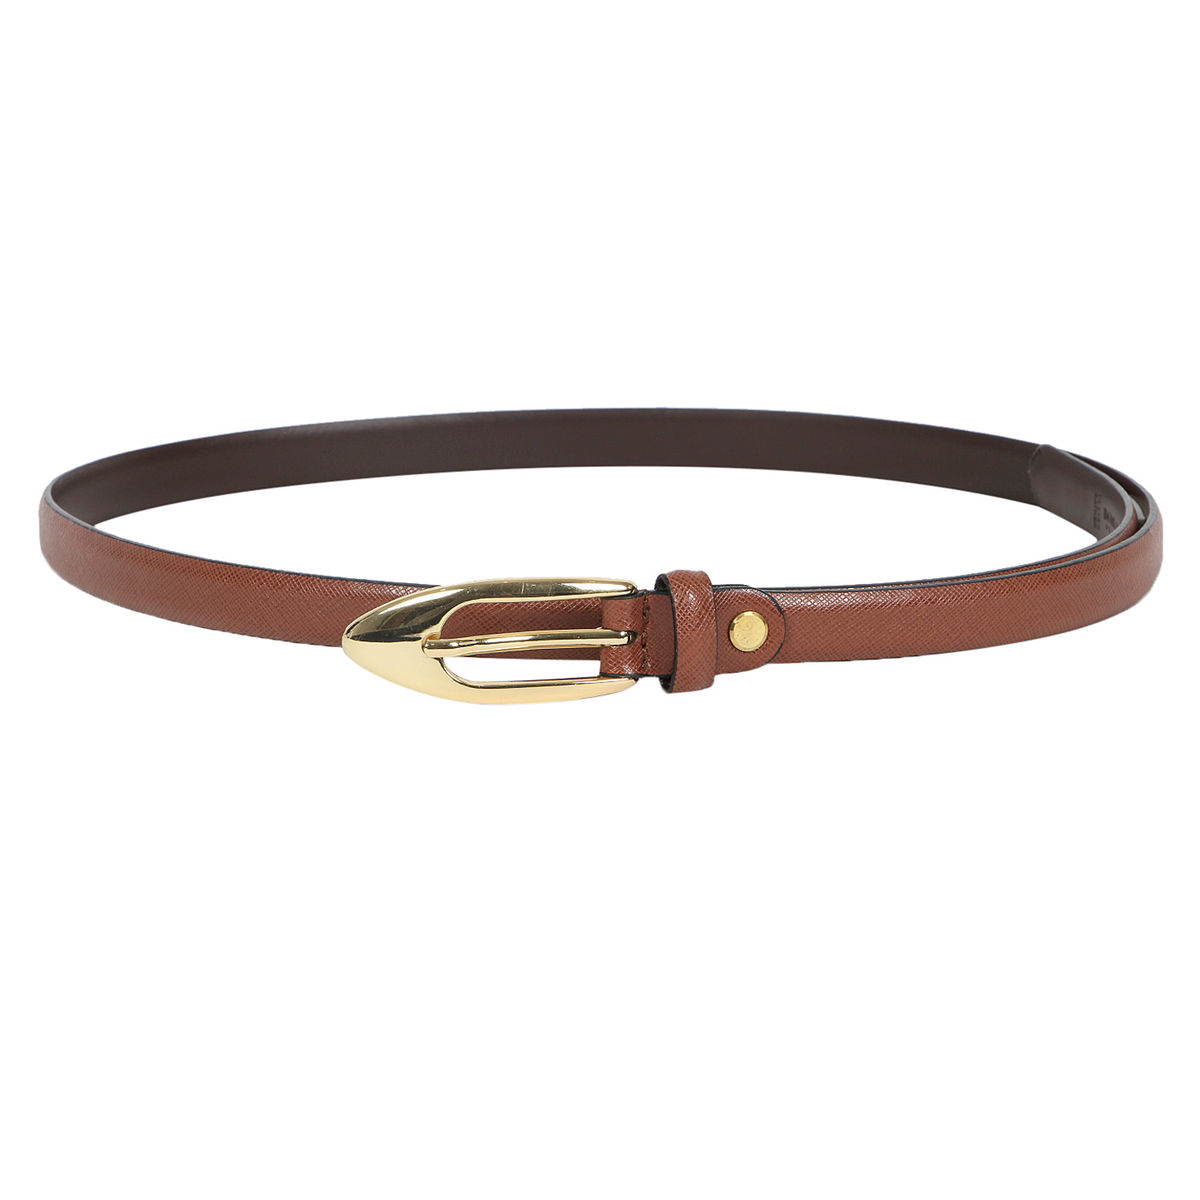 984ccedcd9f85 Da Milano Con Ladies Belt